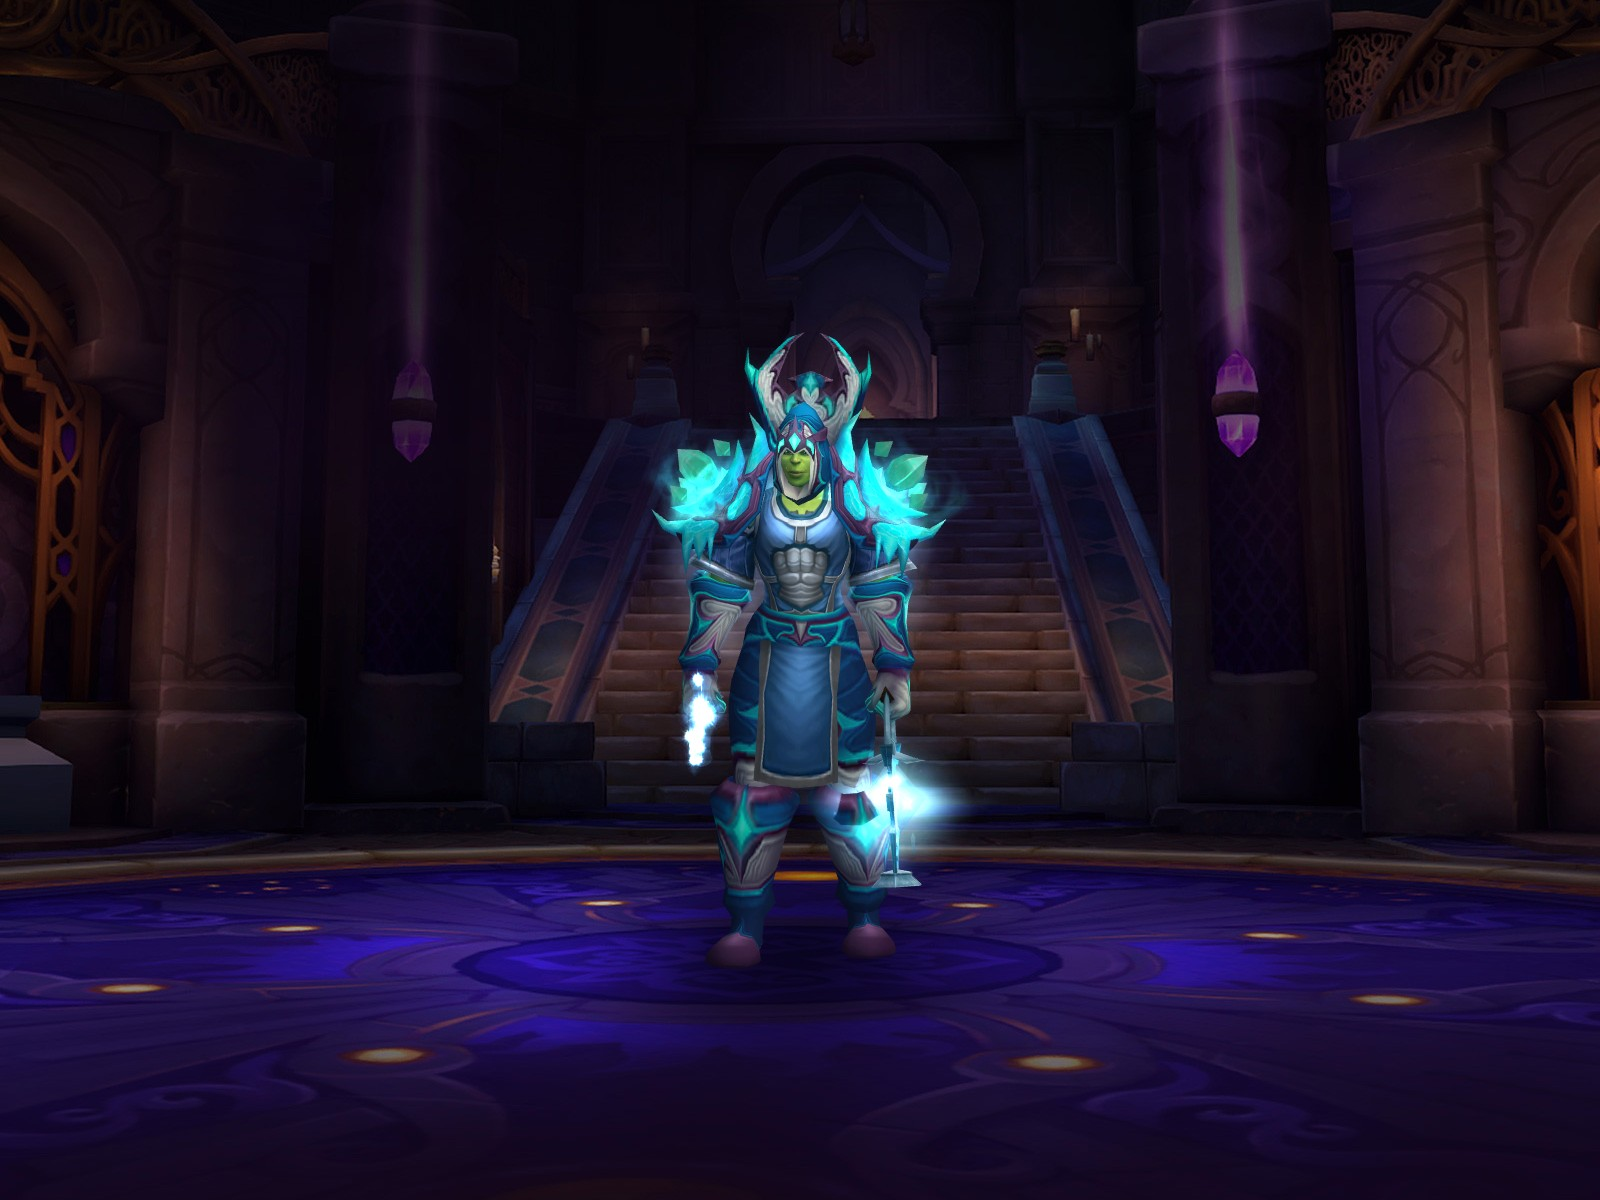 Sifr wow export character image ccuart Images